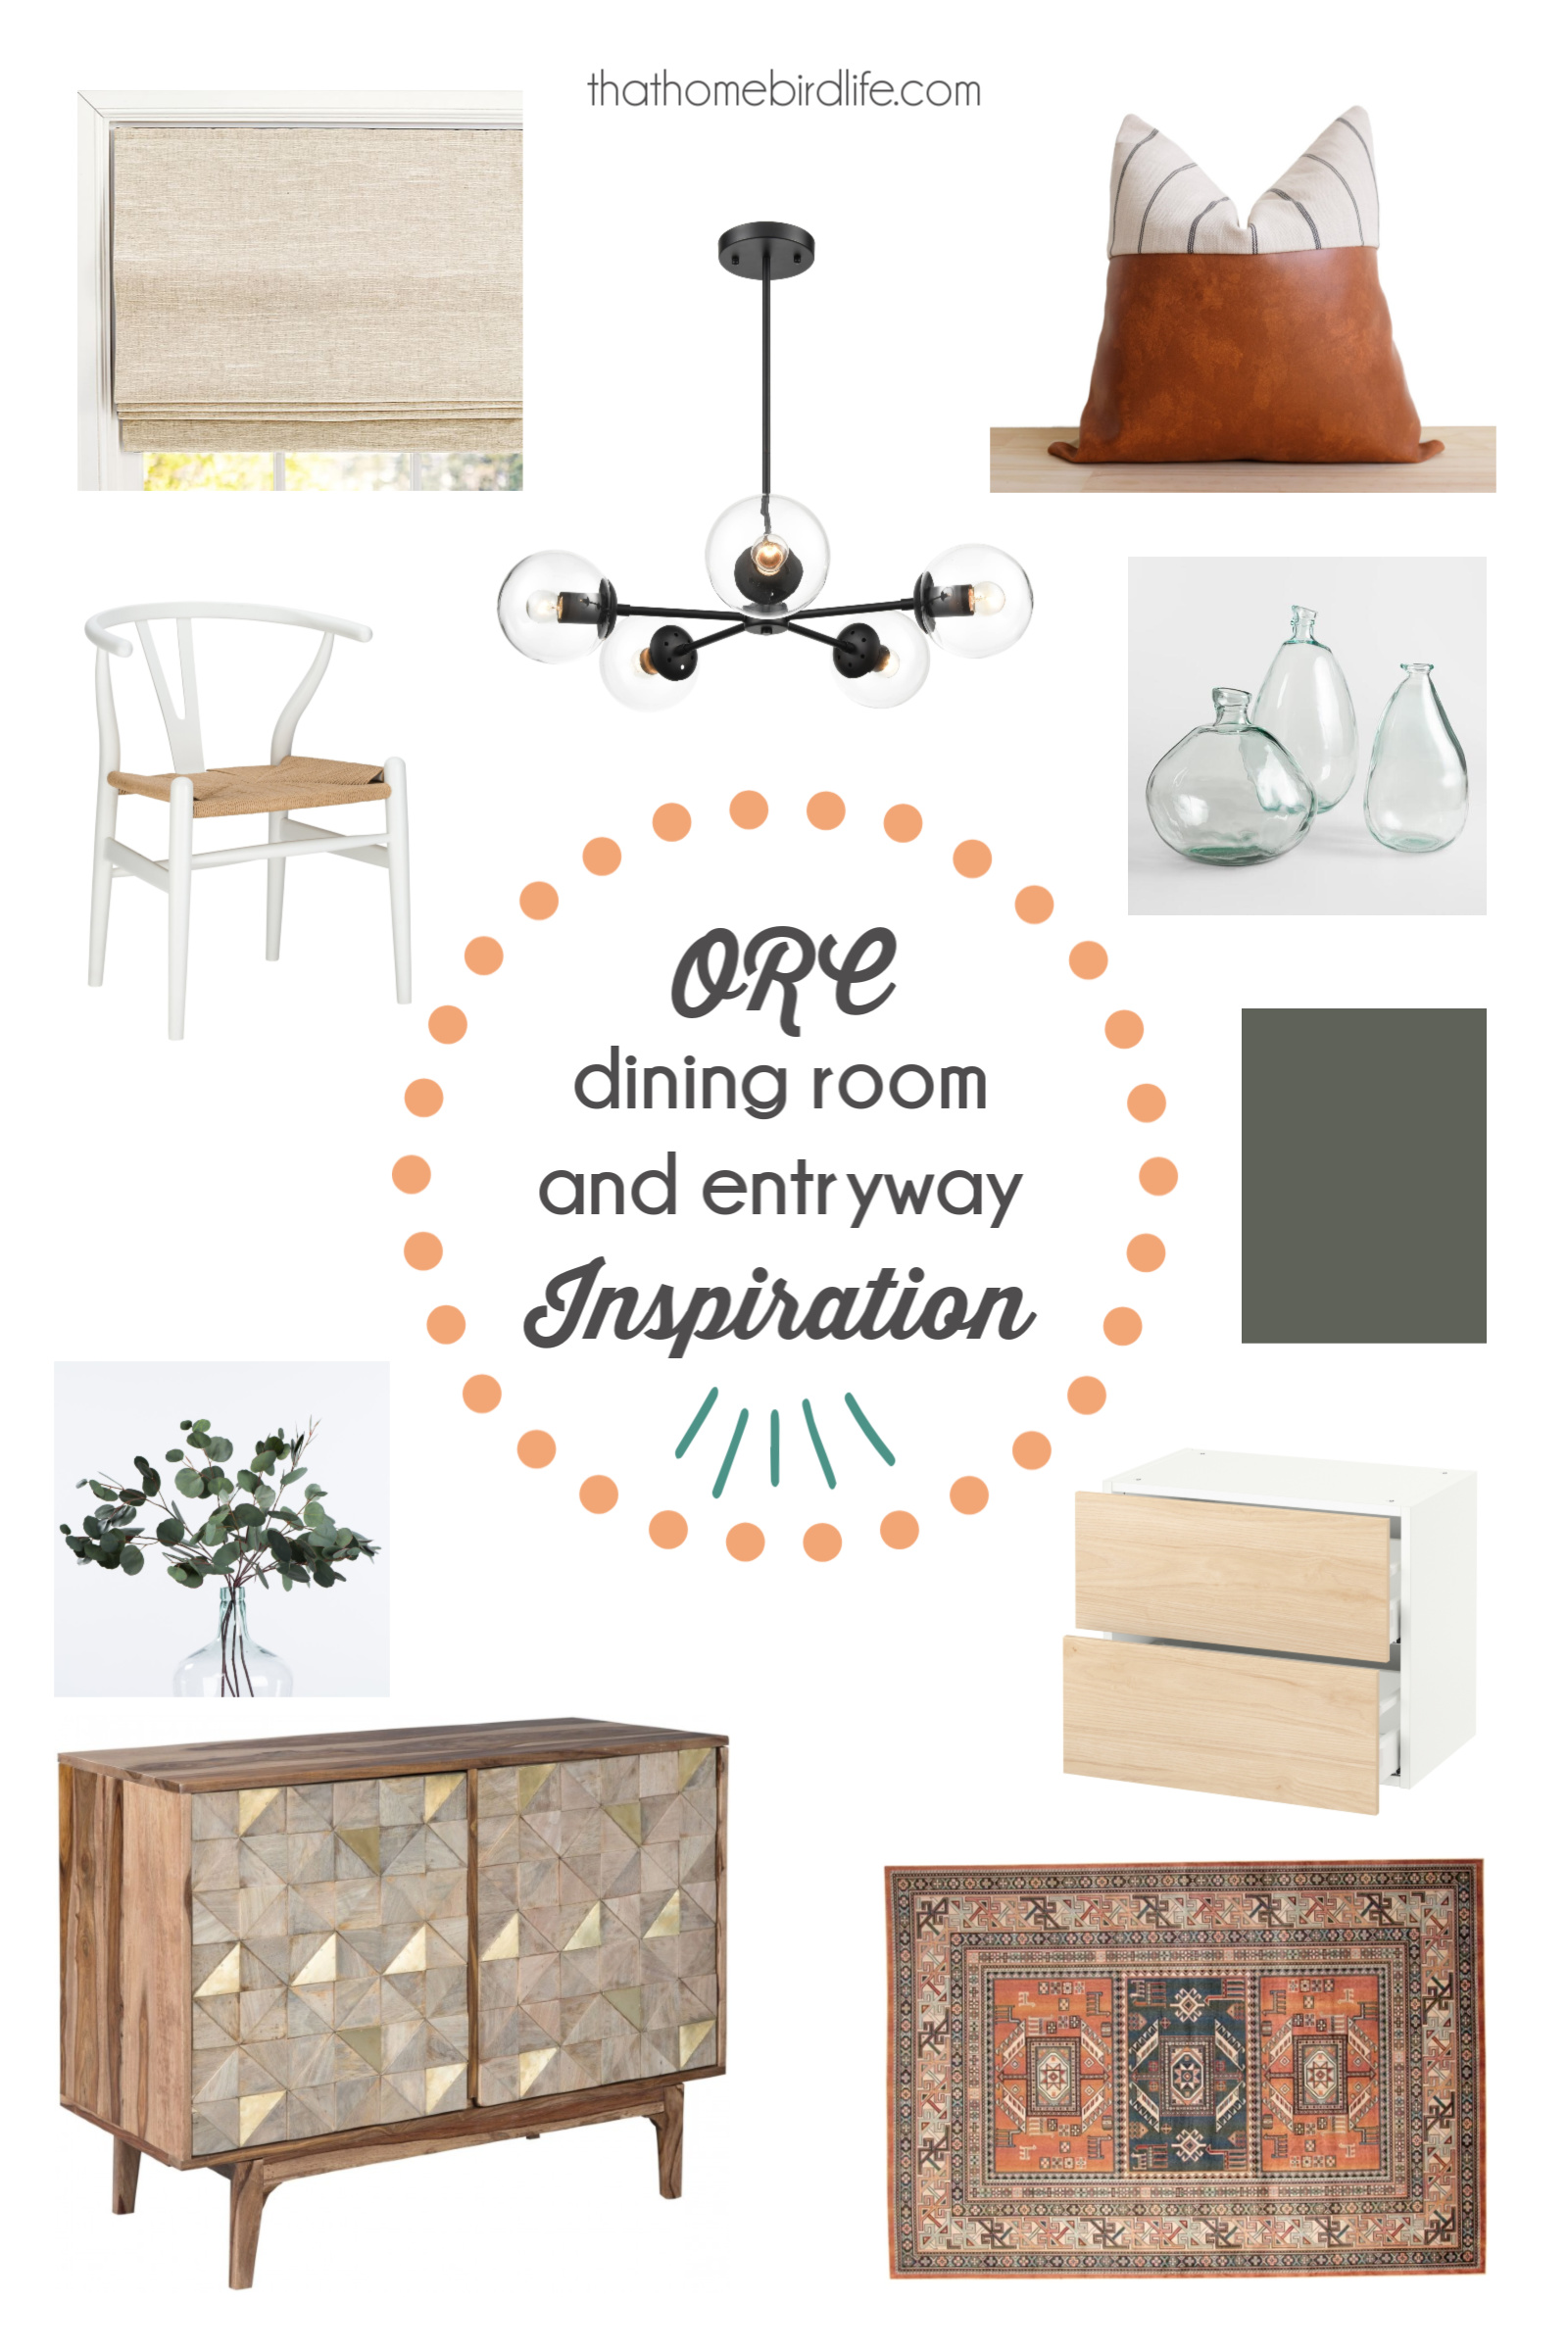 That Homebird Life - My friend Jude is also doing a dining room makeover and her entryway is included! She has incredible style so I can't wait to see how it turns out!